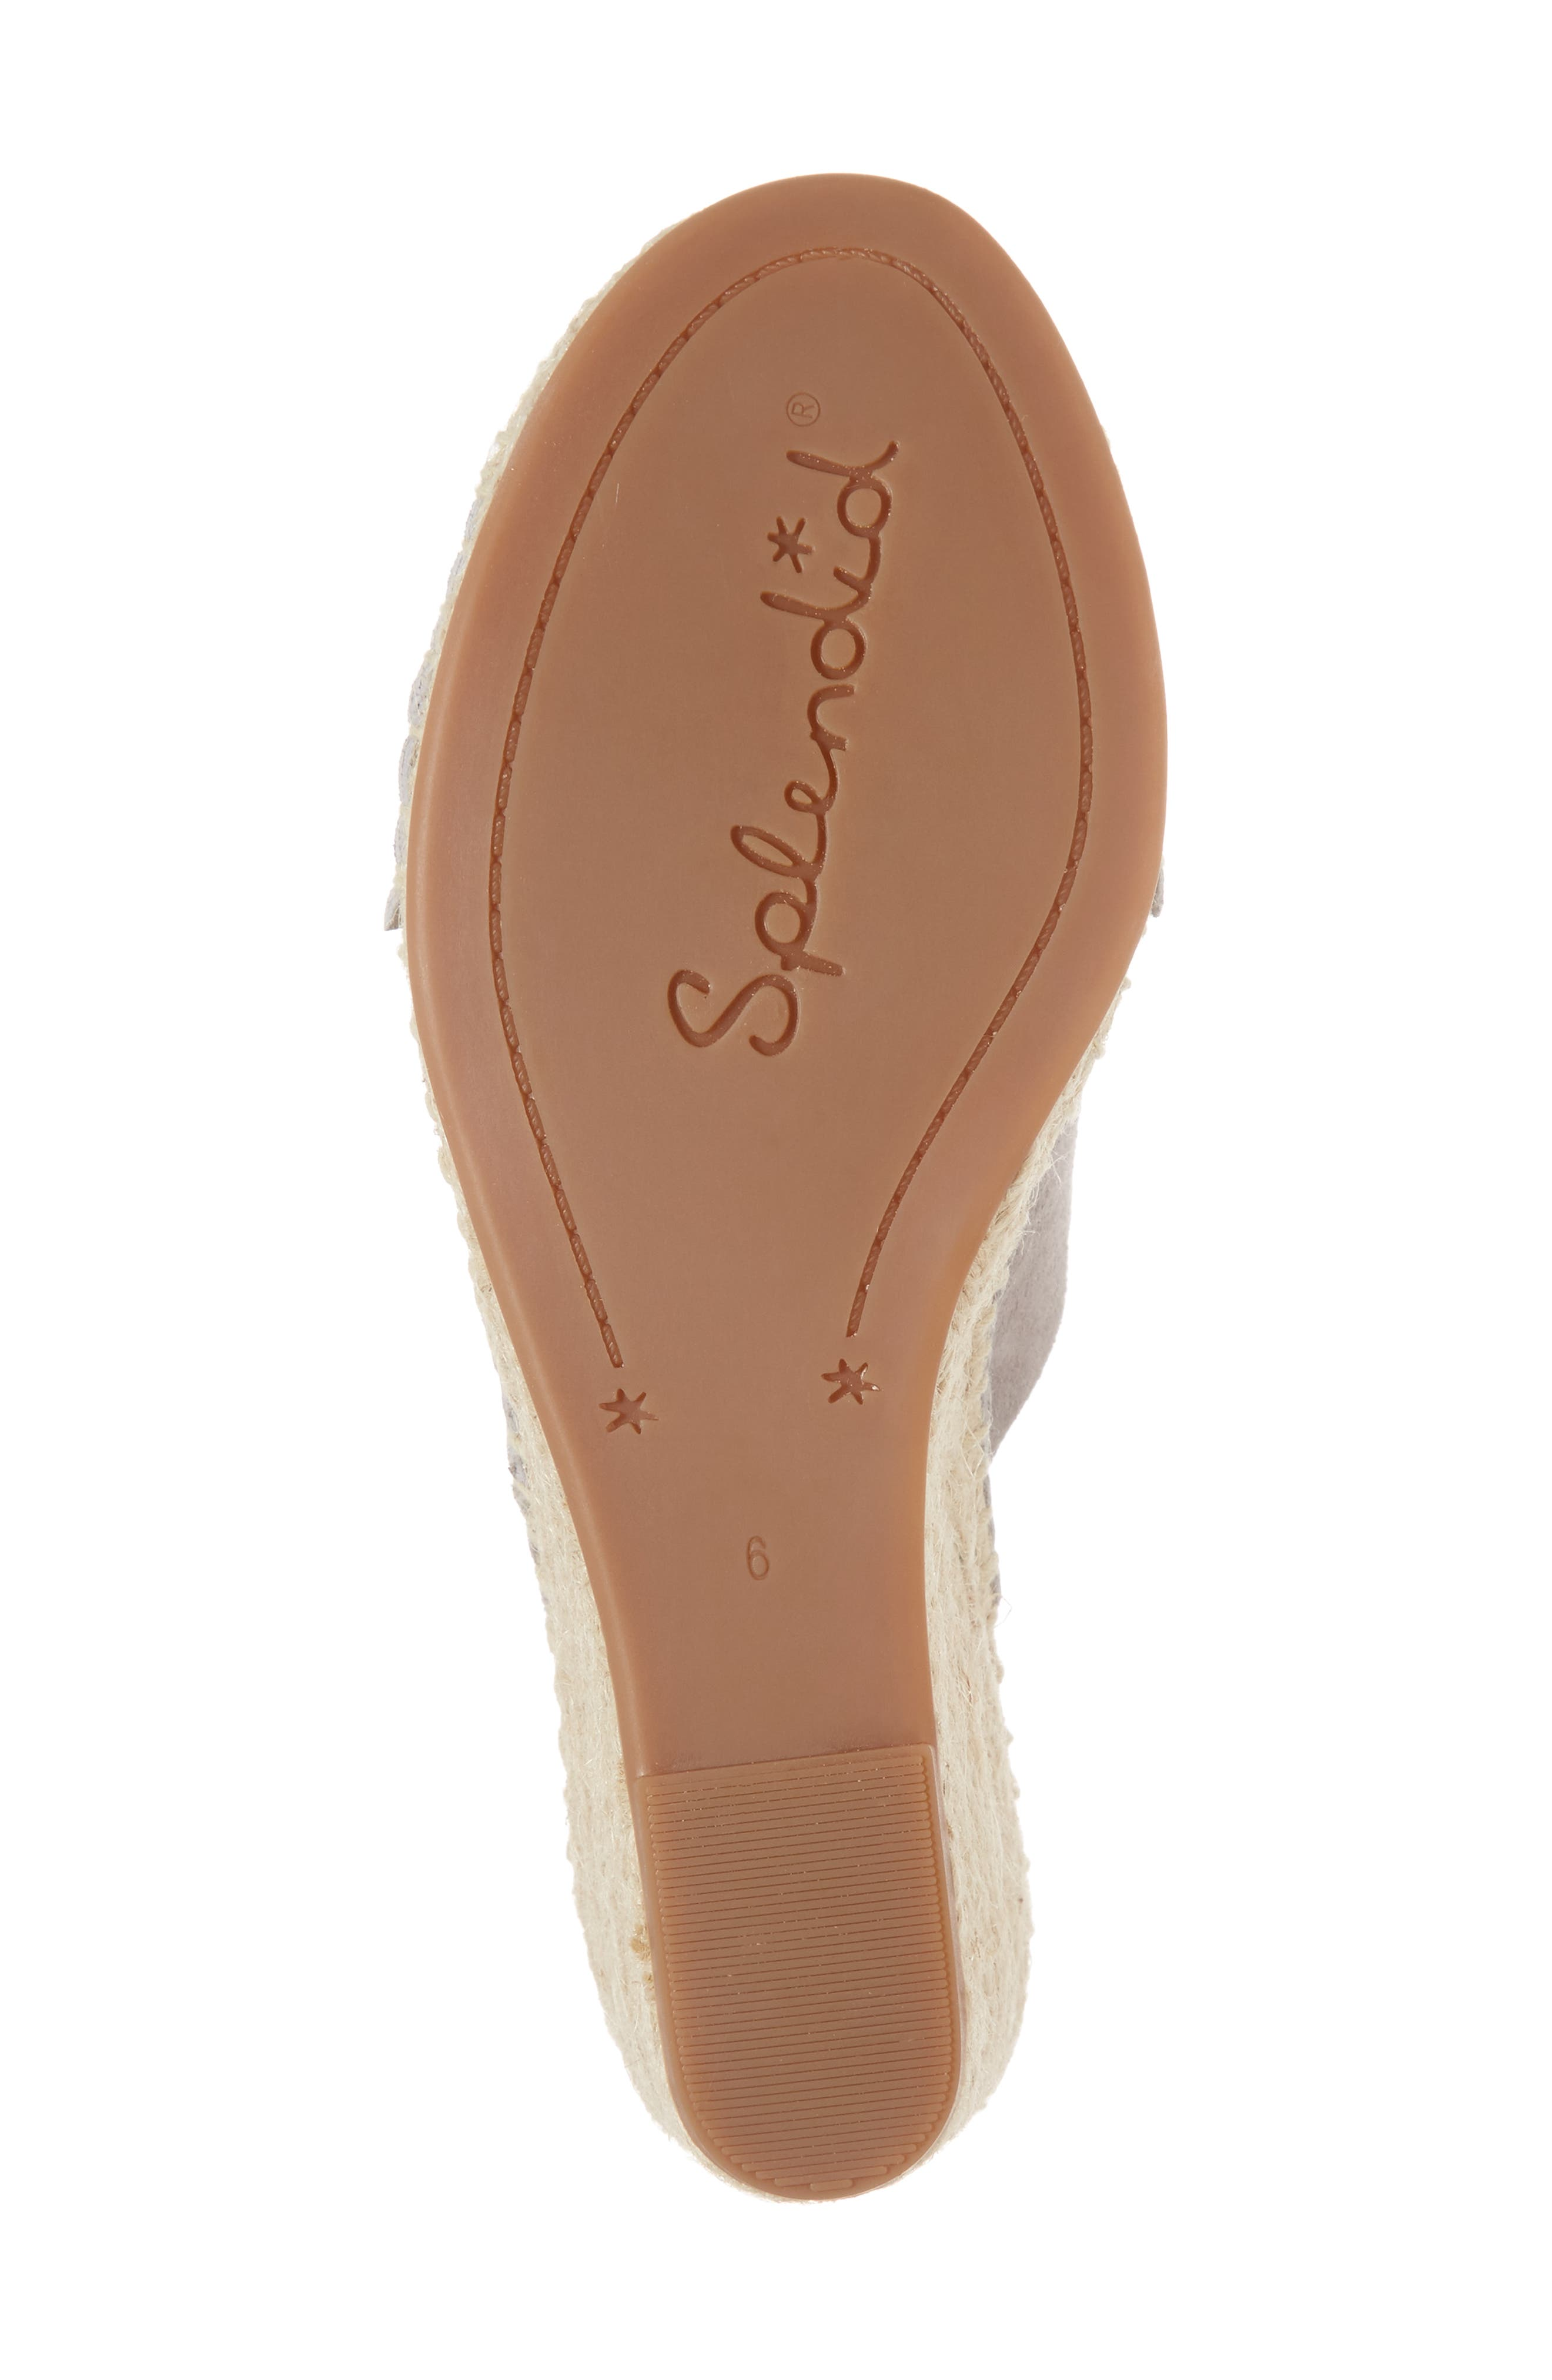 Bautista Knotted Wedge Sandal,                             Alternate thumbnail 6, color,                             053